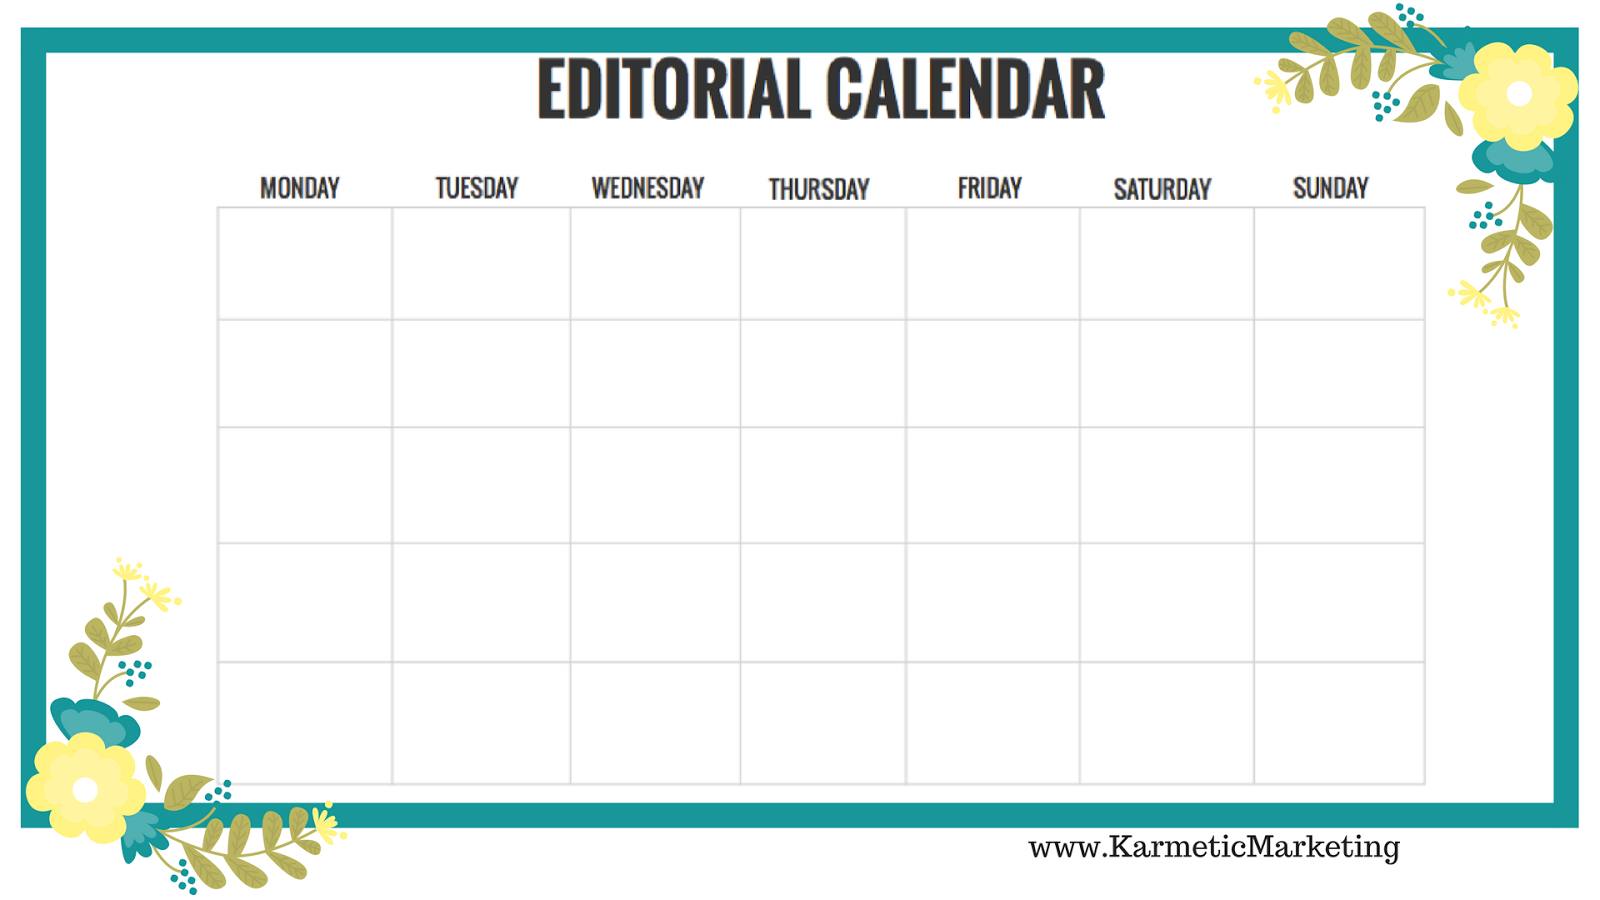 karmetic marketing how to fill your november editorial calendar